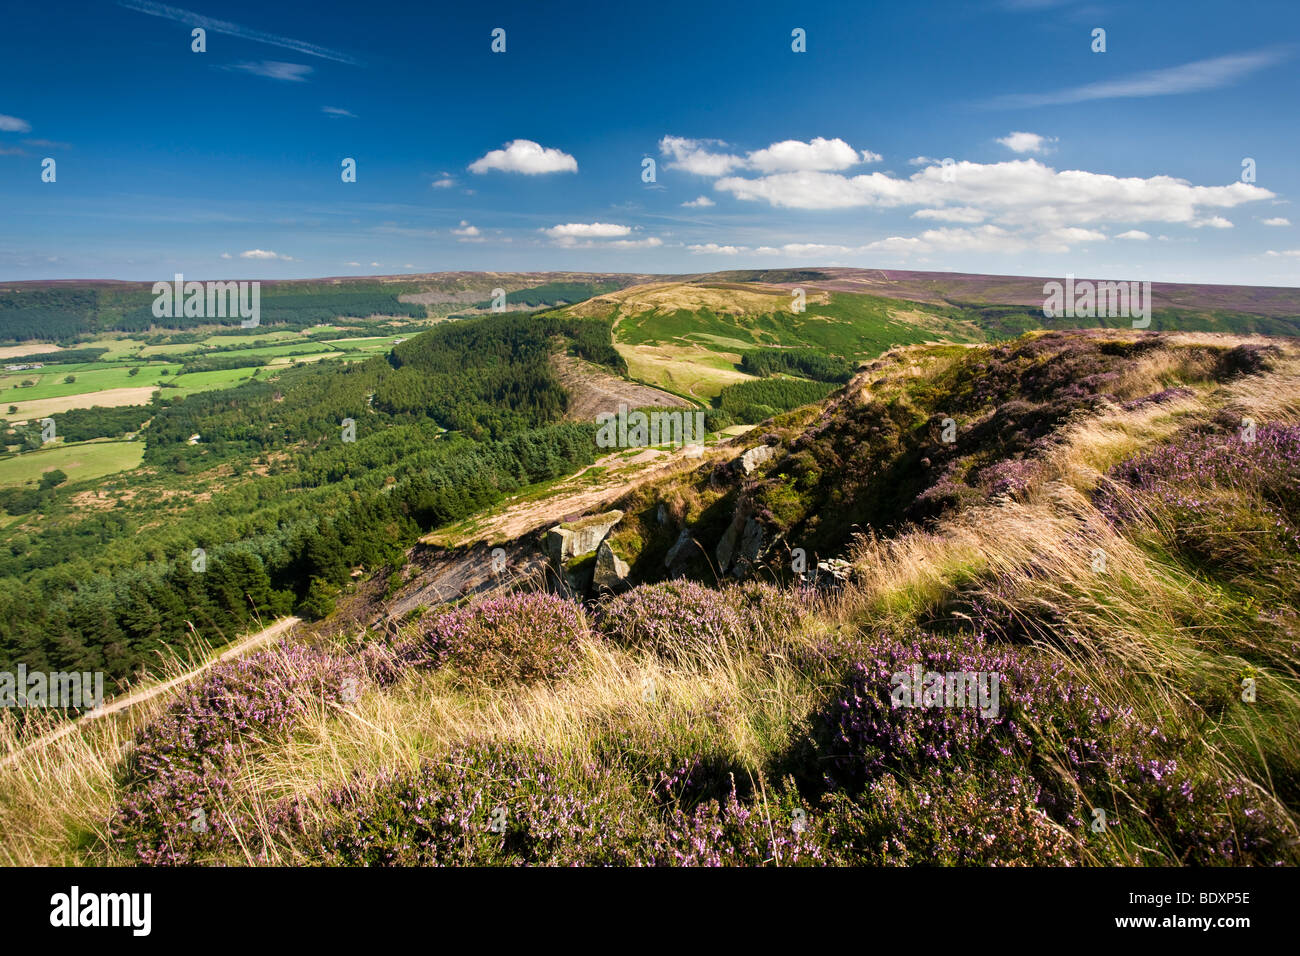 Hasty Bank on the Cleveland Way, North York Moors National Park - Stock Image